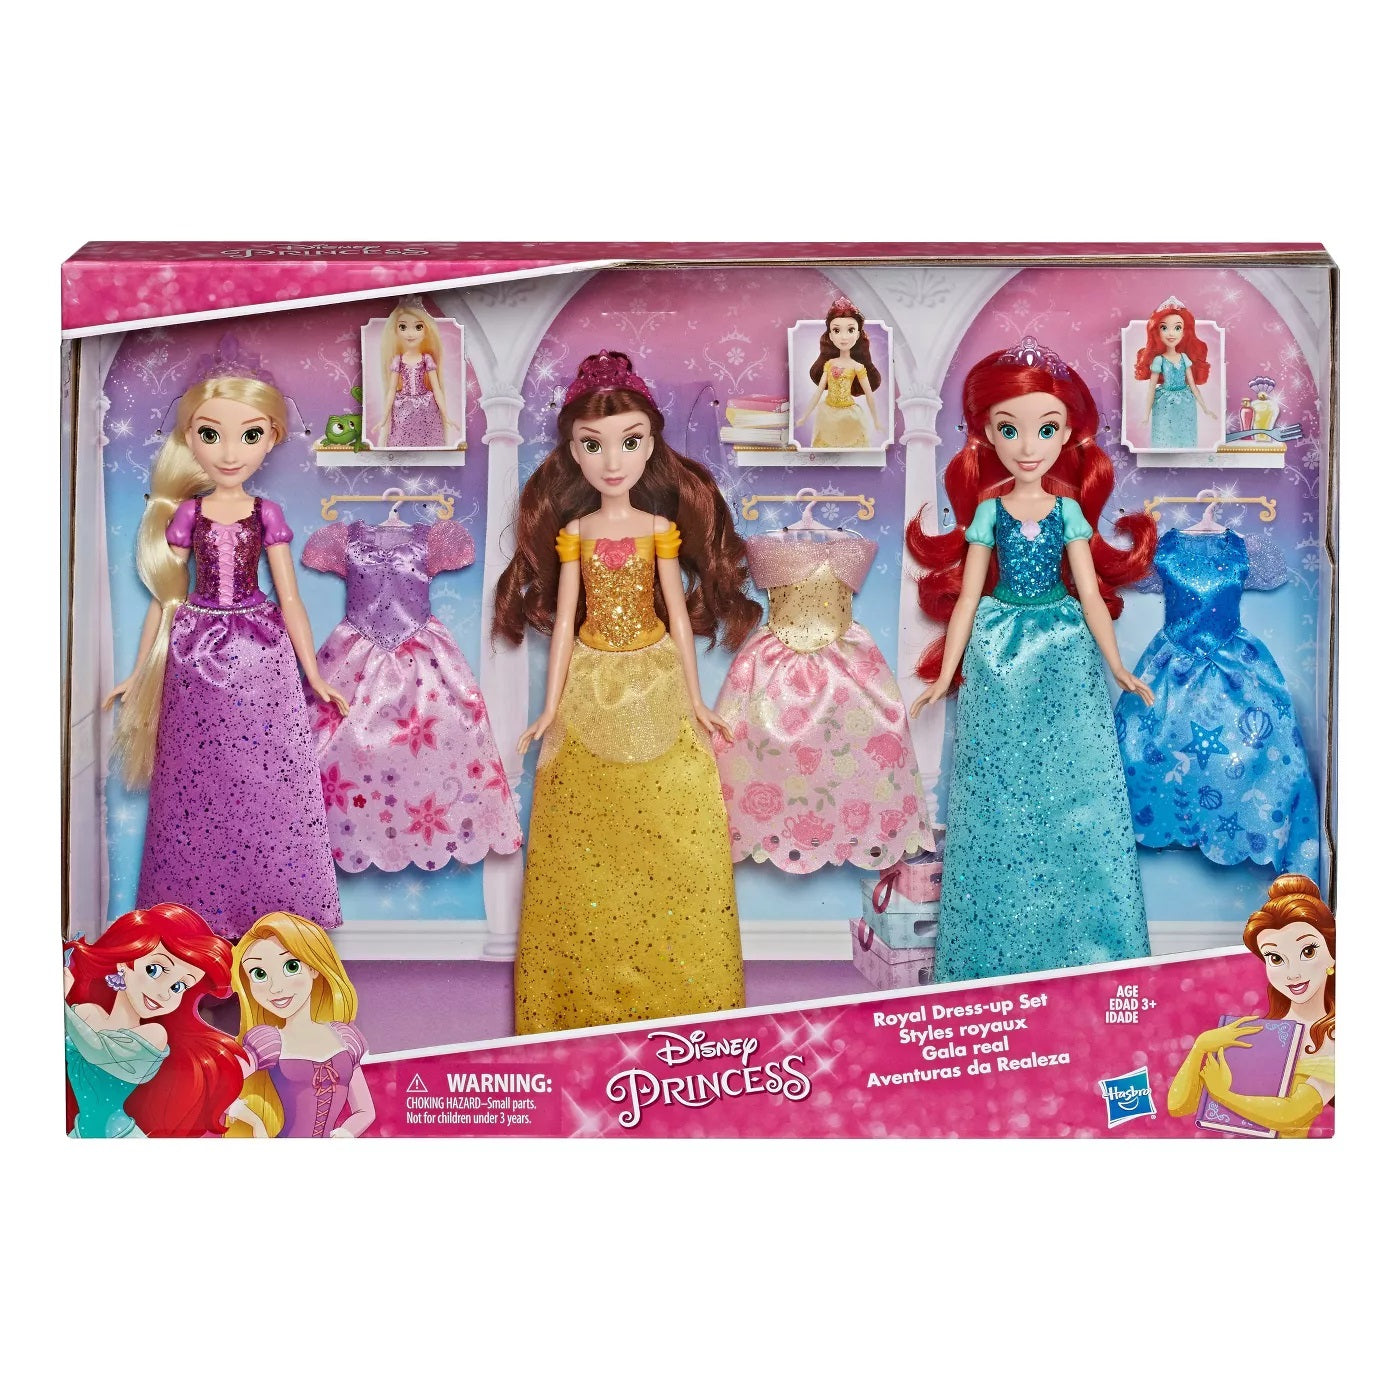 Disney Princess Royal Dress-Up Set (Rapunzel, Belle, Ariel Dolls + Extra Dresses)